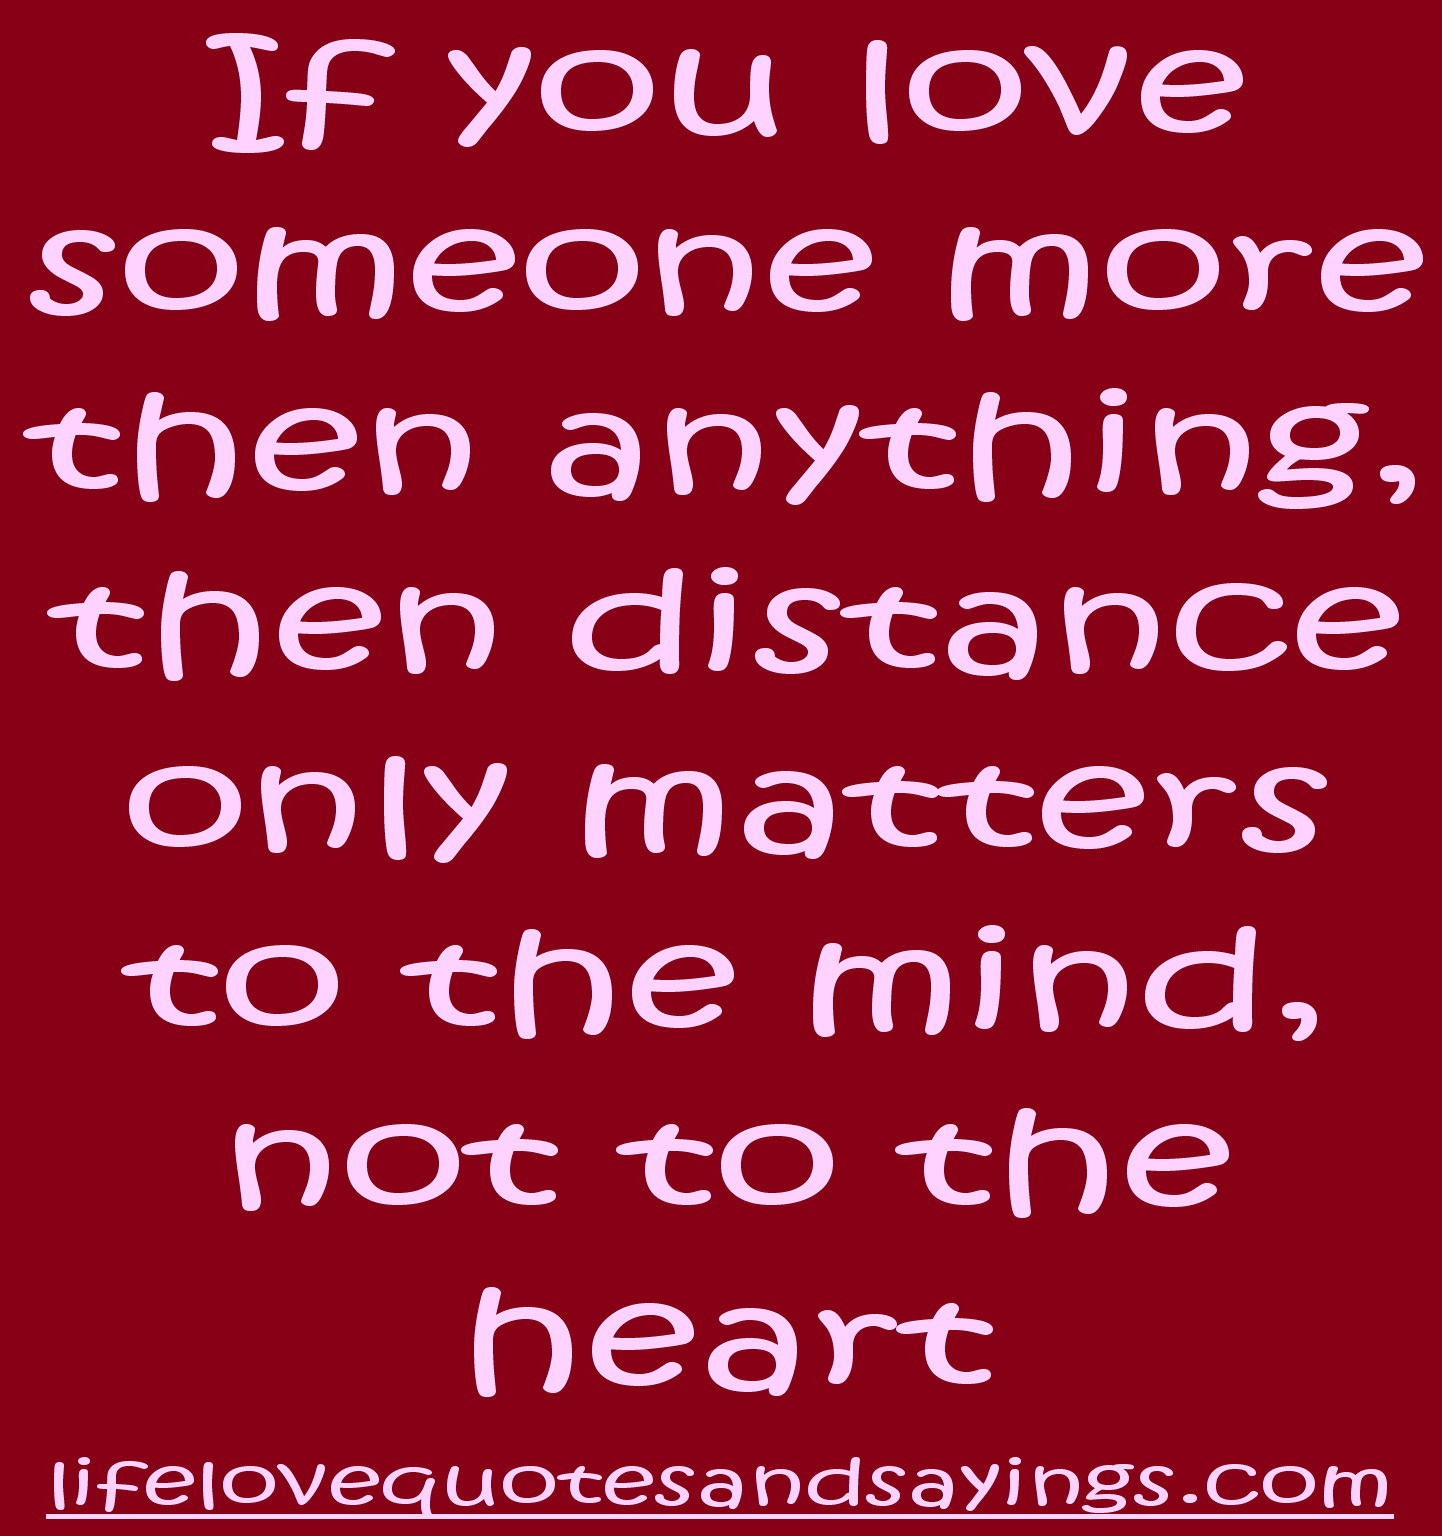 Love Quotes For Him From The Heart: True Heart Quotes. QuotesGram